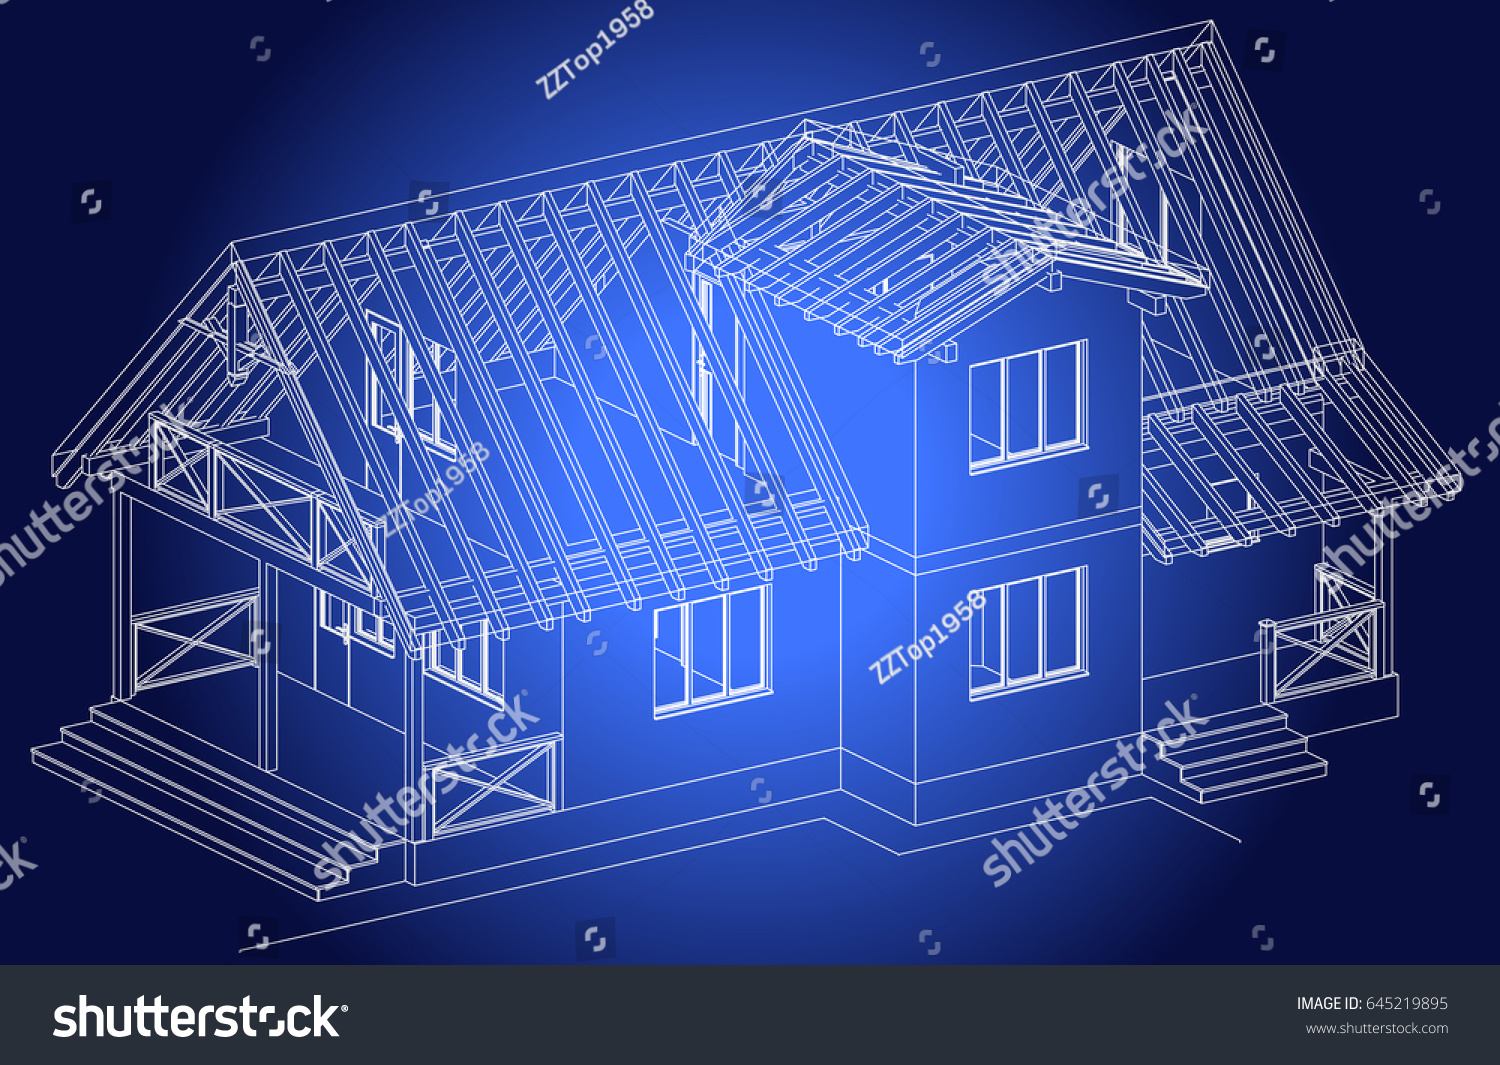 Blueprint architectural design halftimbered residential house stock the blueprint of architectural design of half timbered residential house with the terrace vector malvernweather Image collections